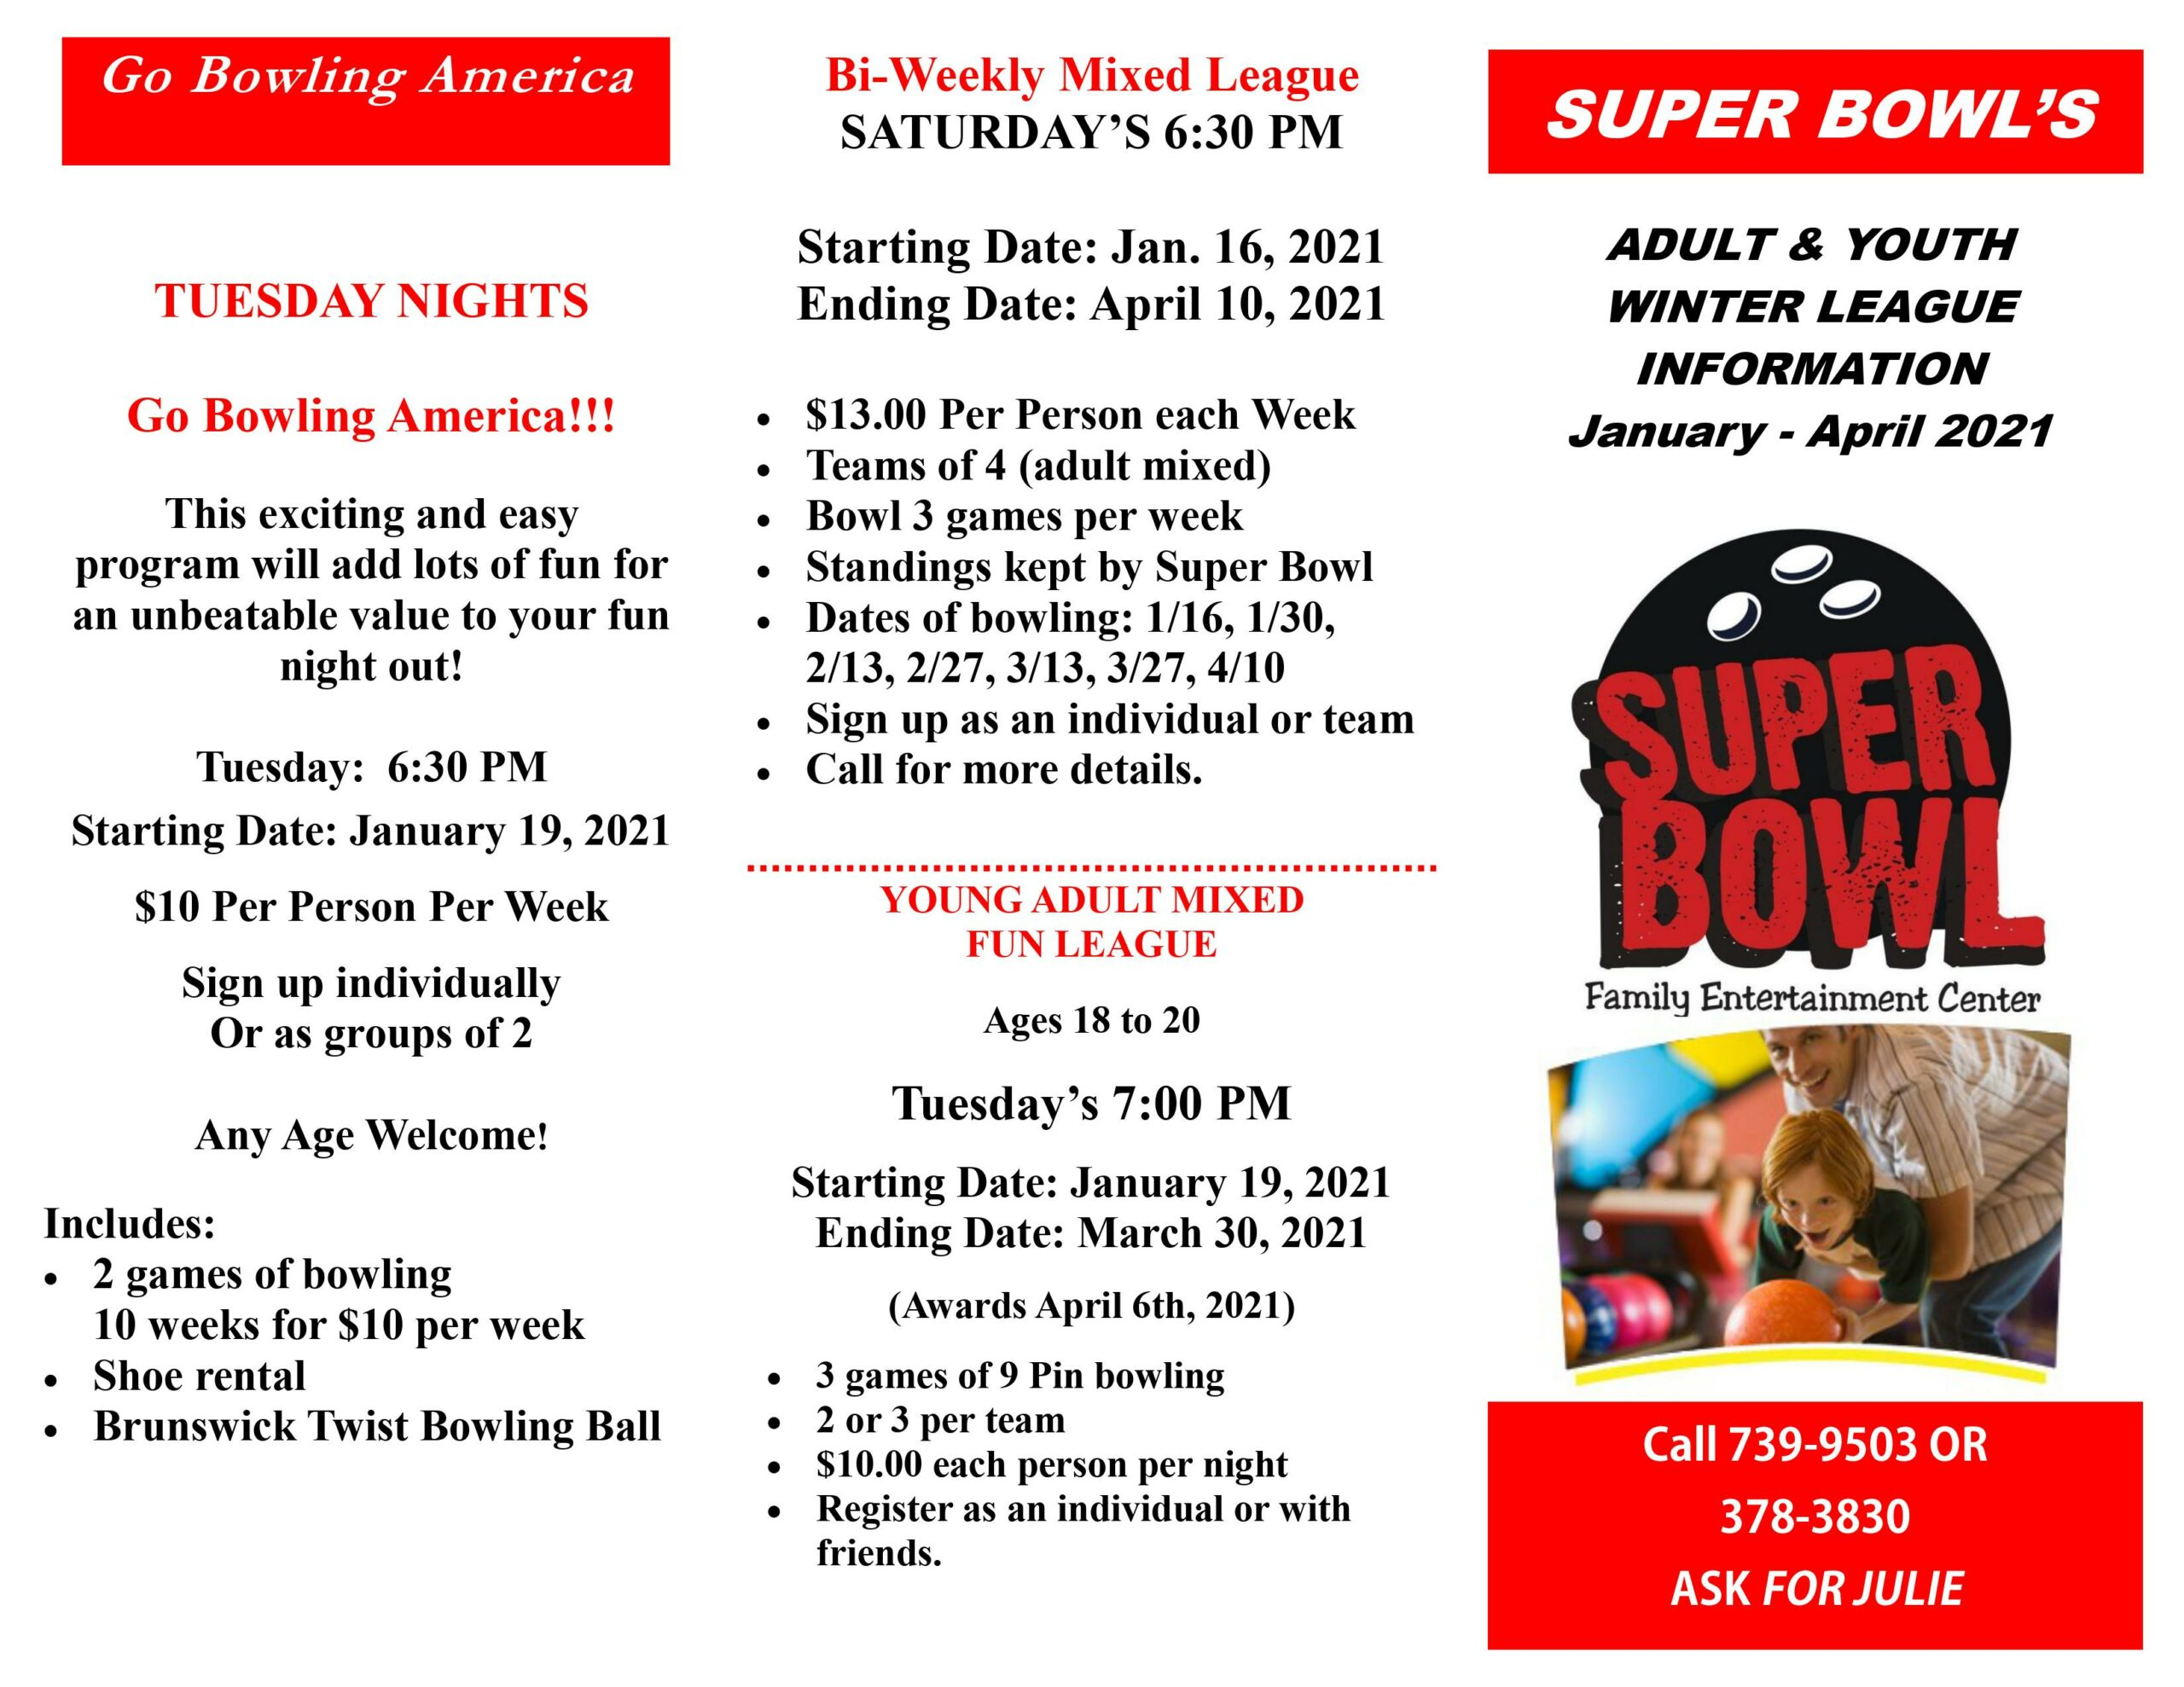 adult/youth bowling leagues | adult leagues | January 2021 | Super Bowl Family Entertainment Center | Appleton, WI